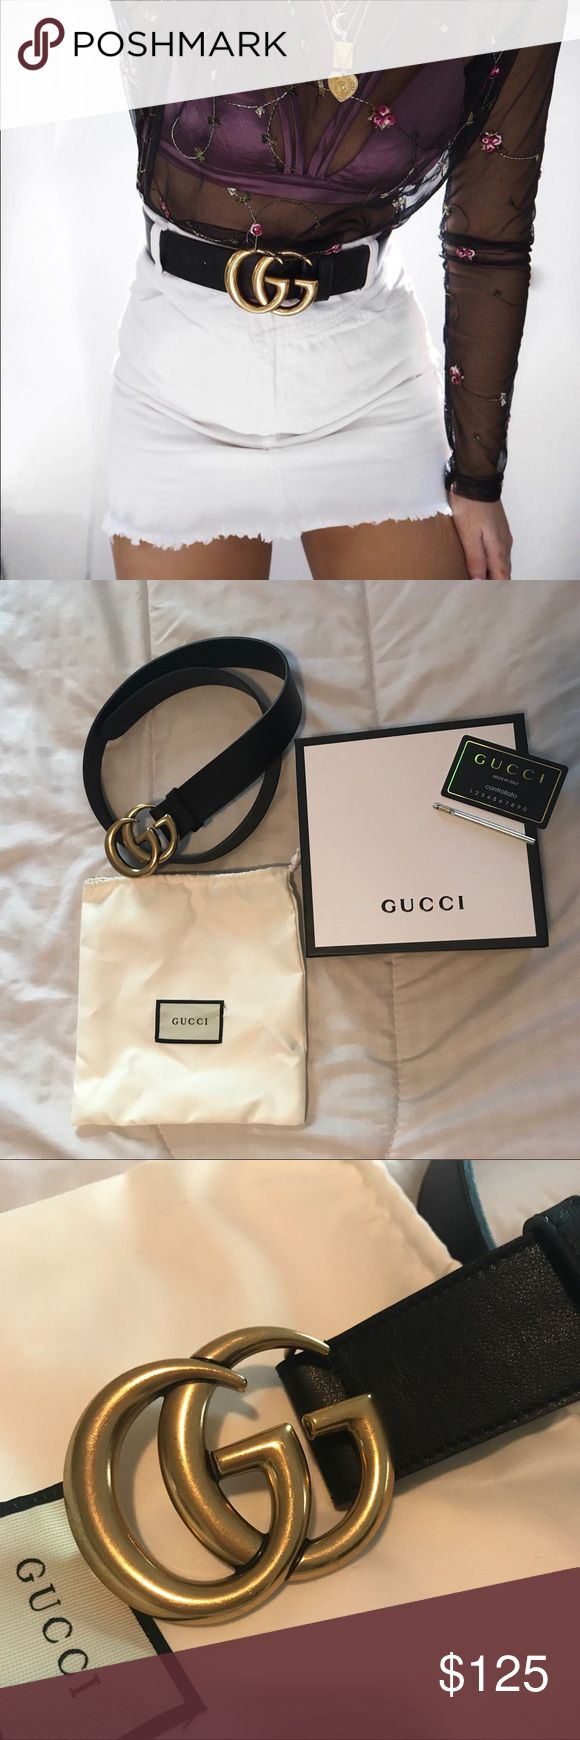 Gucci Double G belt ❌ PRICE REFLECTS AUTHENTICITY ❌ Selling for a friend! Gucci Double G belt. Size 90. Black belt with heavy sturdy gold double G buckle. A few extra holes were made with a belt hole puncher to fit a 27-28 inch waist. She wore once otherwise. Excellent condition. Comes with everything pictured. $100 aypal‼️ Gucci Accessories Belts